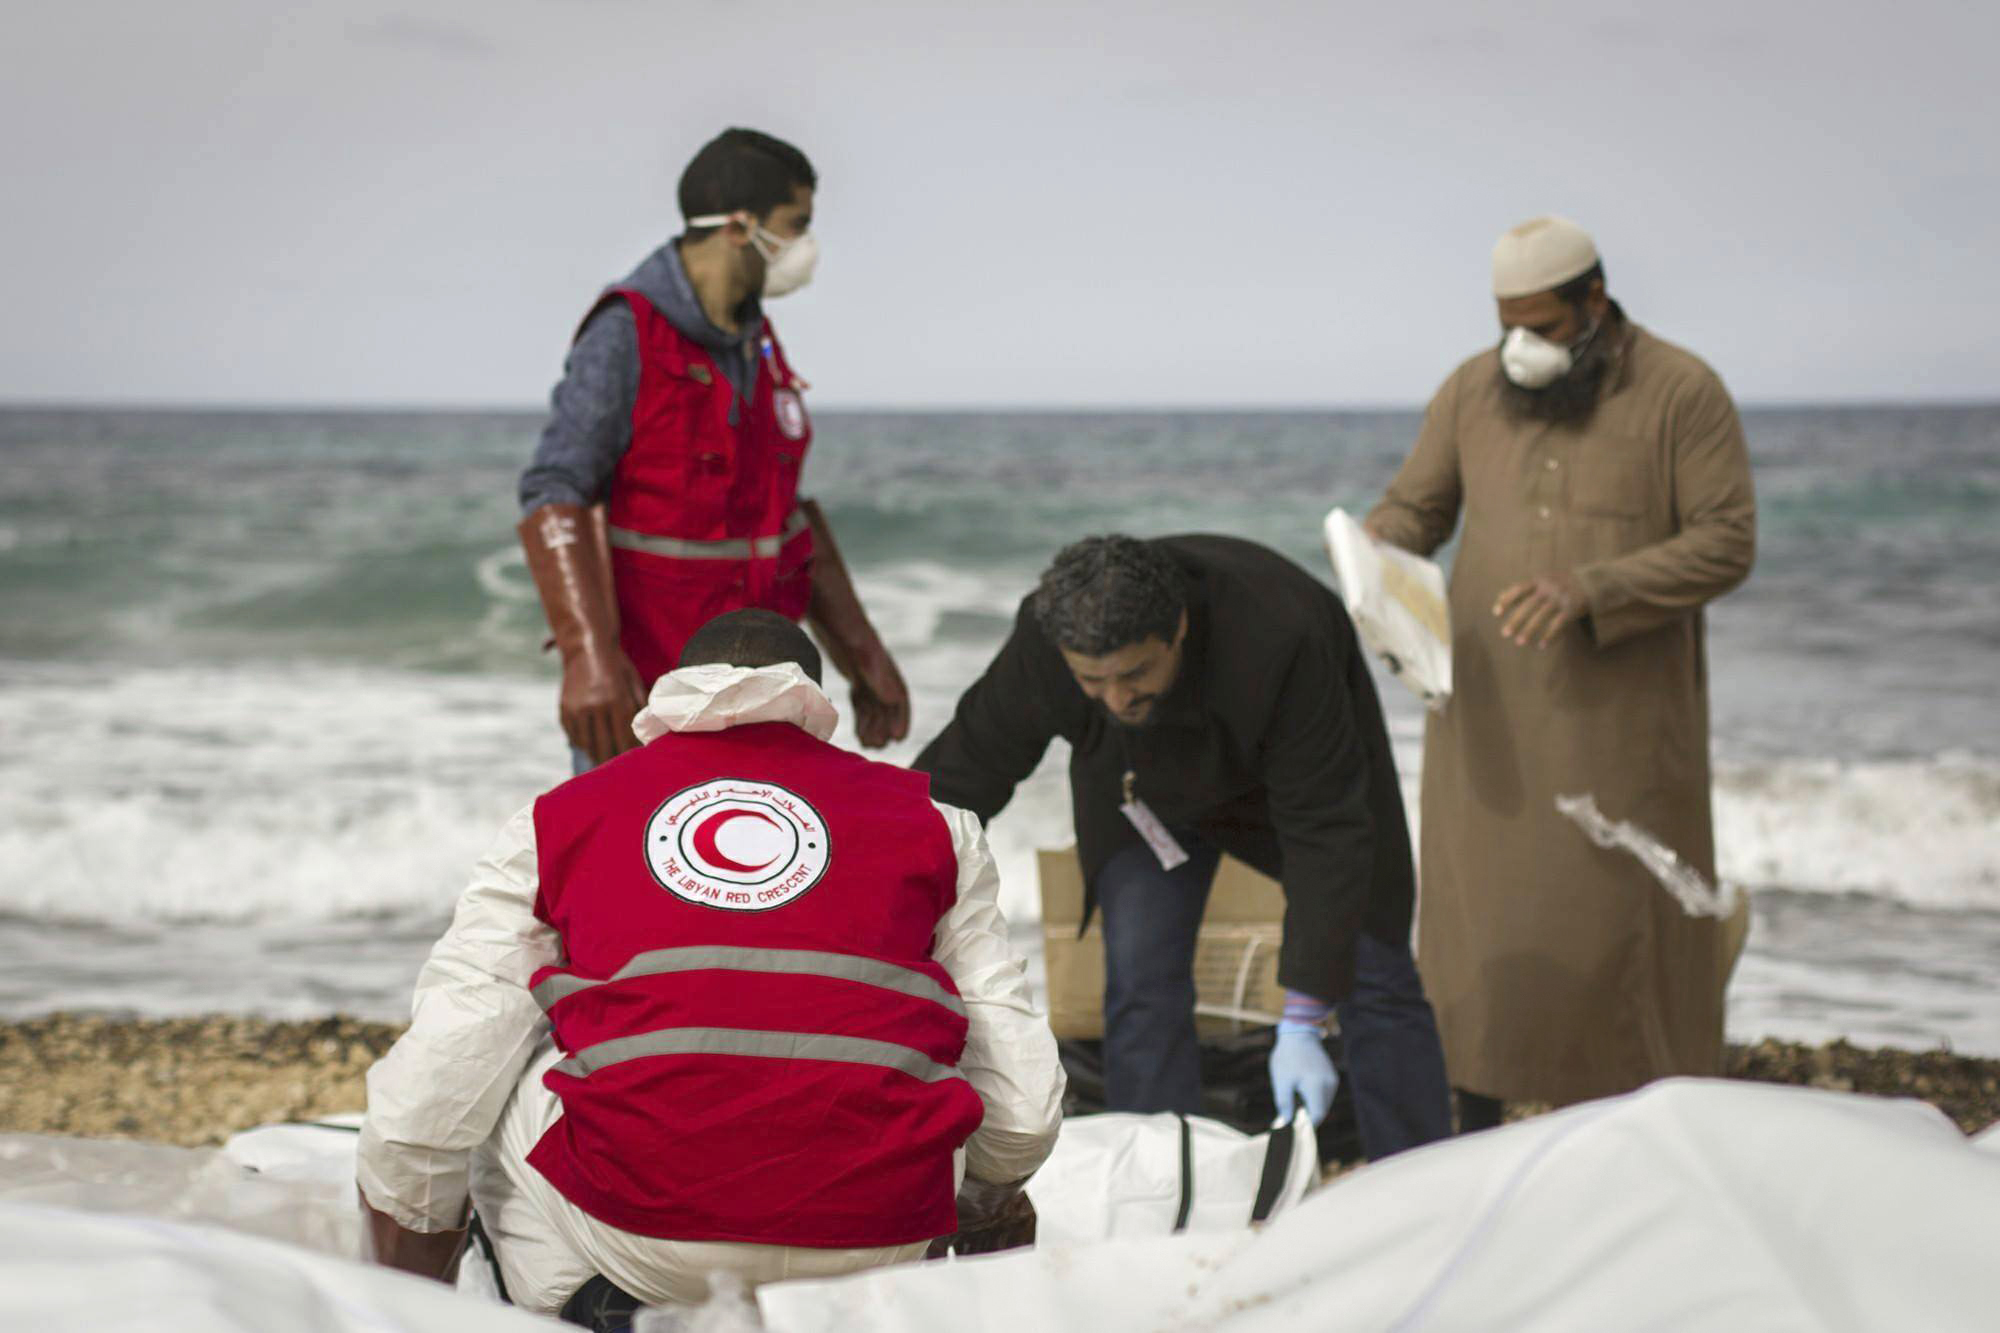 Libyan Red Crescent workers recovering bodies of people that washed ashore, near Zawiya, Libya on Feb. 20, 2017.(Mohannad Karima/IFRC via AP)